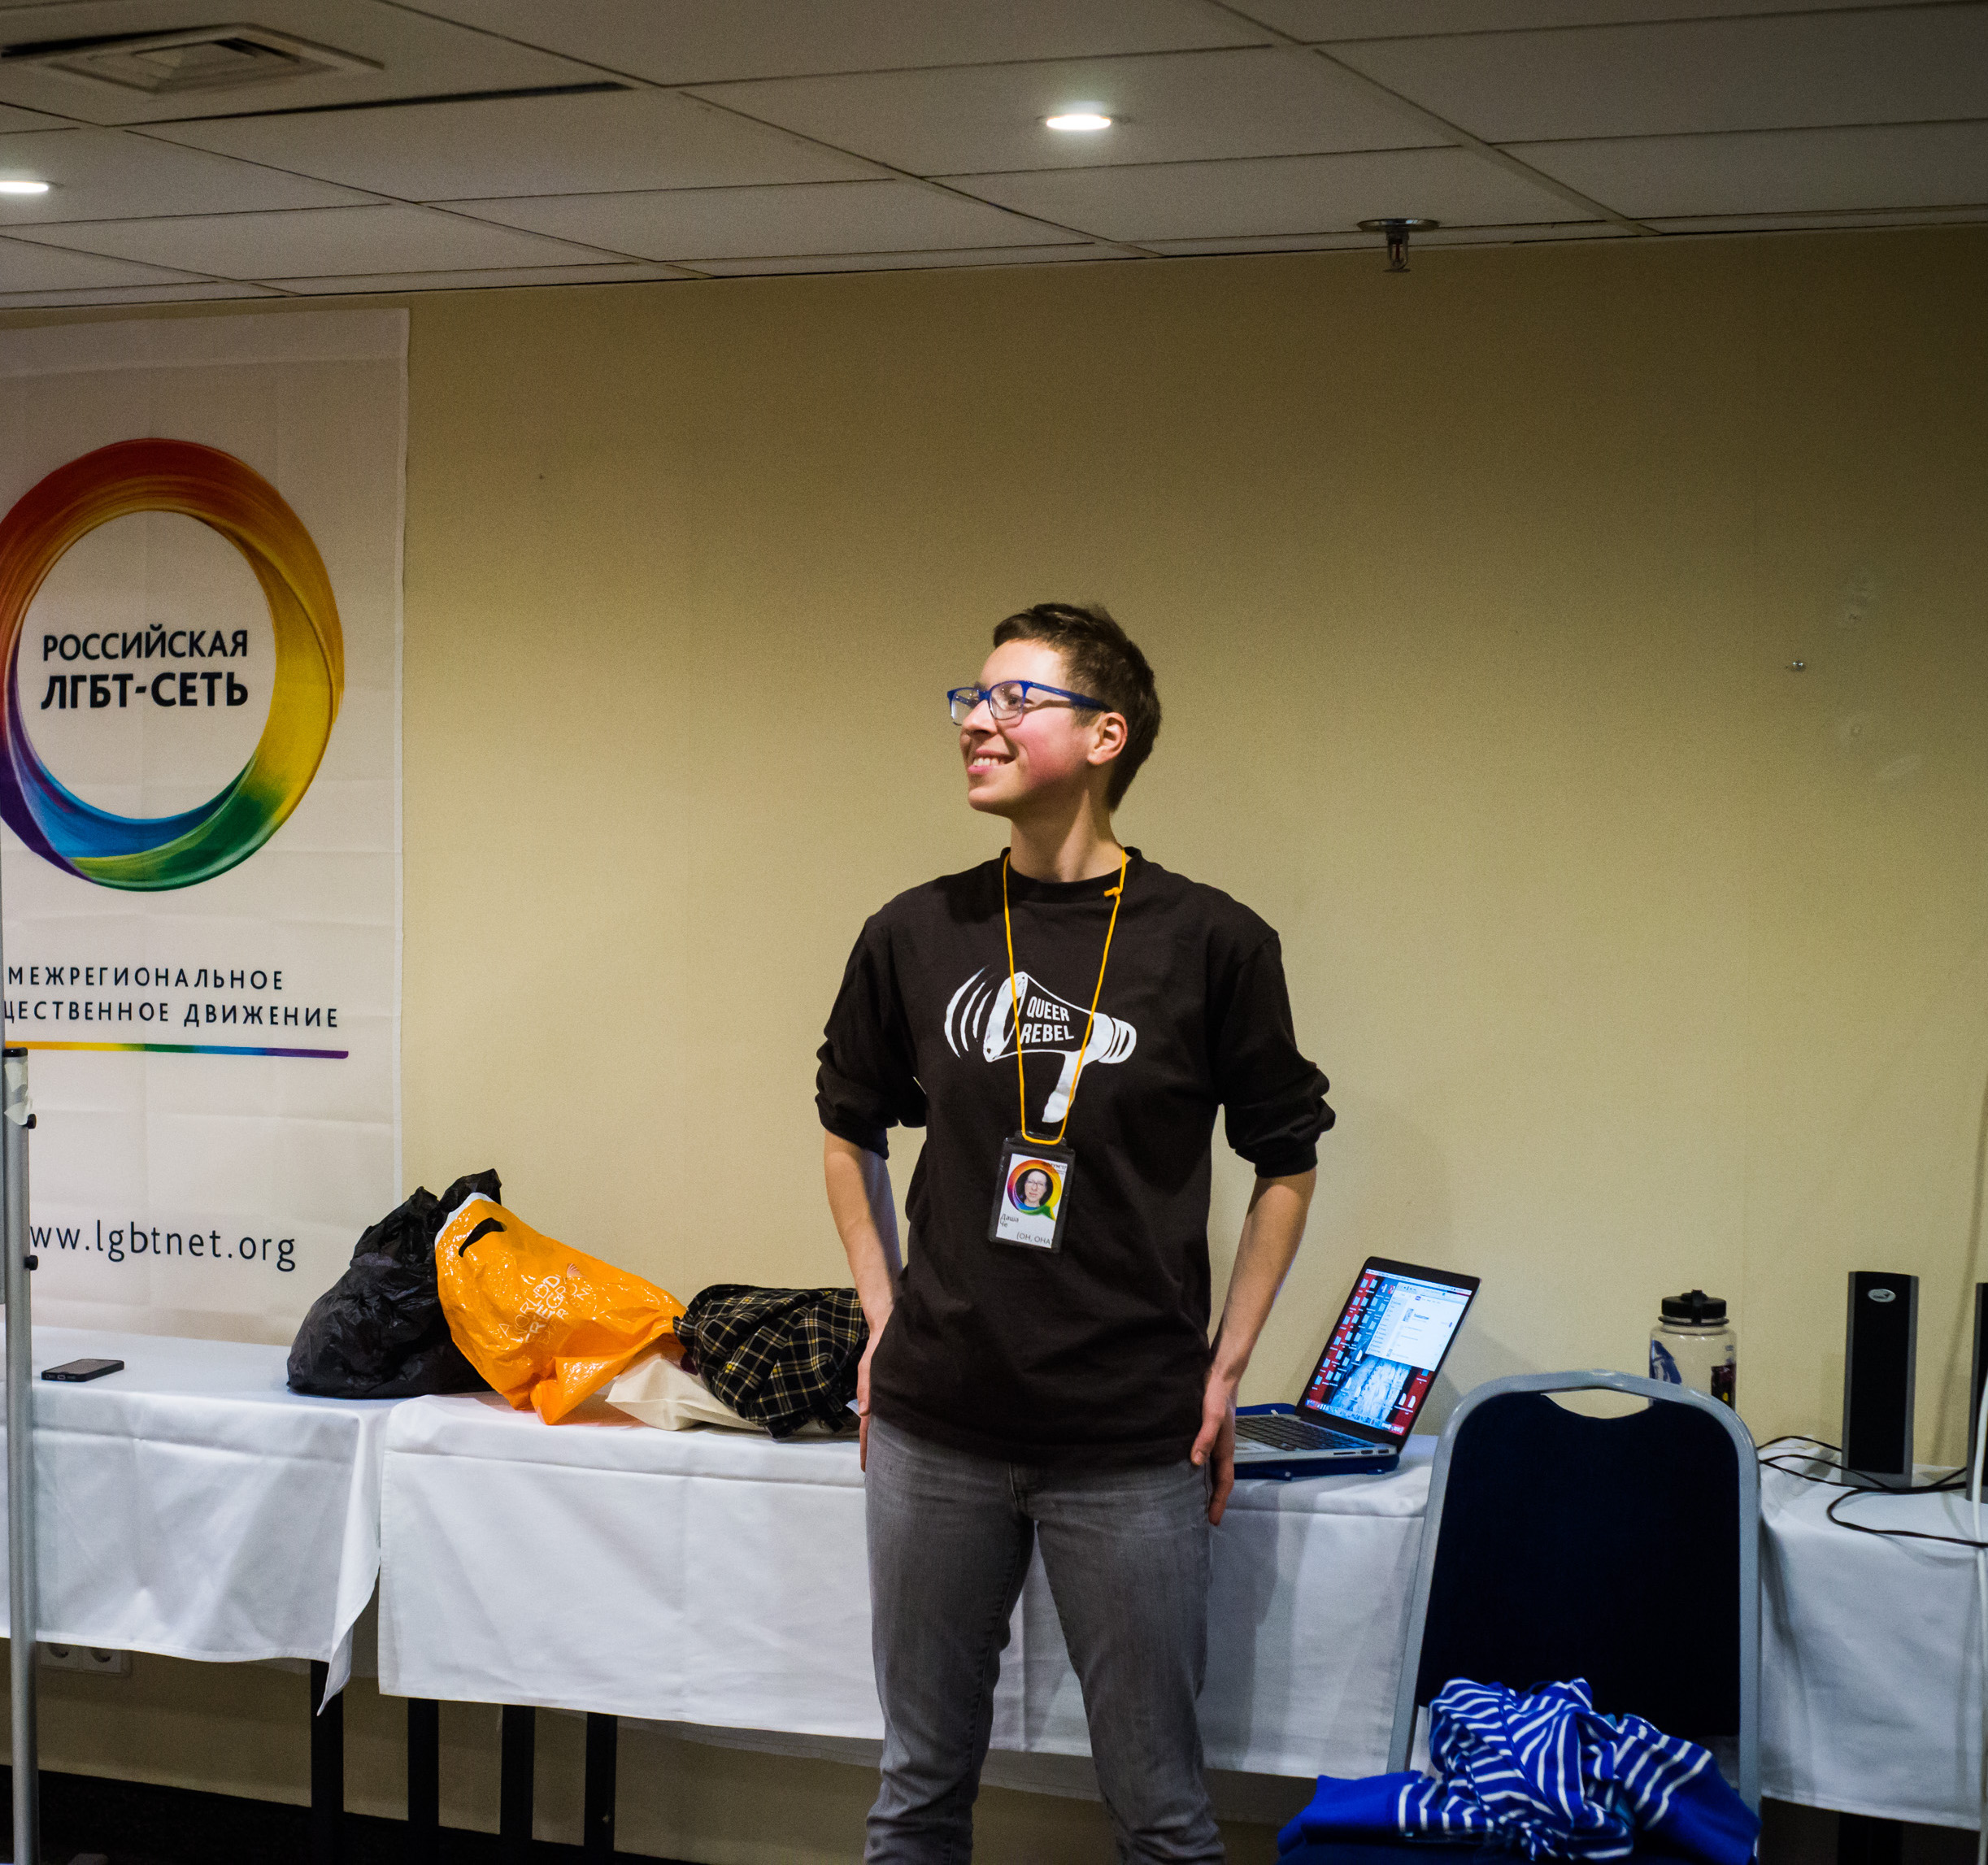 Telaboratoria as a part of 2017 Forum for LGBT activists. Photo credit: Russian LGBT Network. November 2017